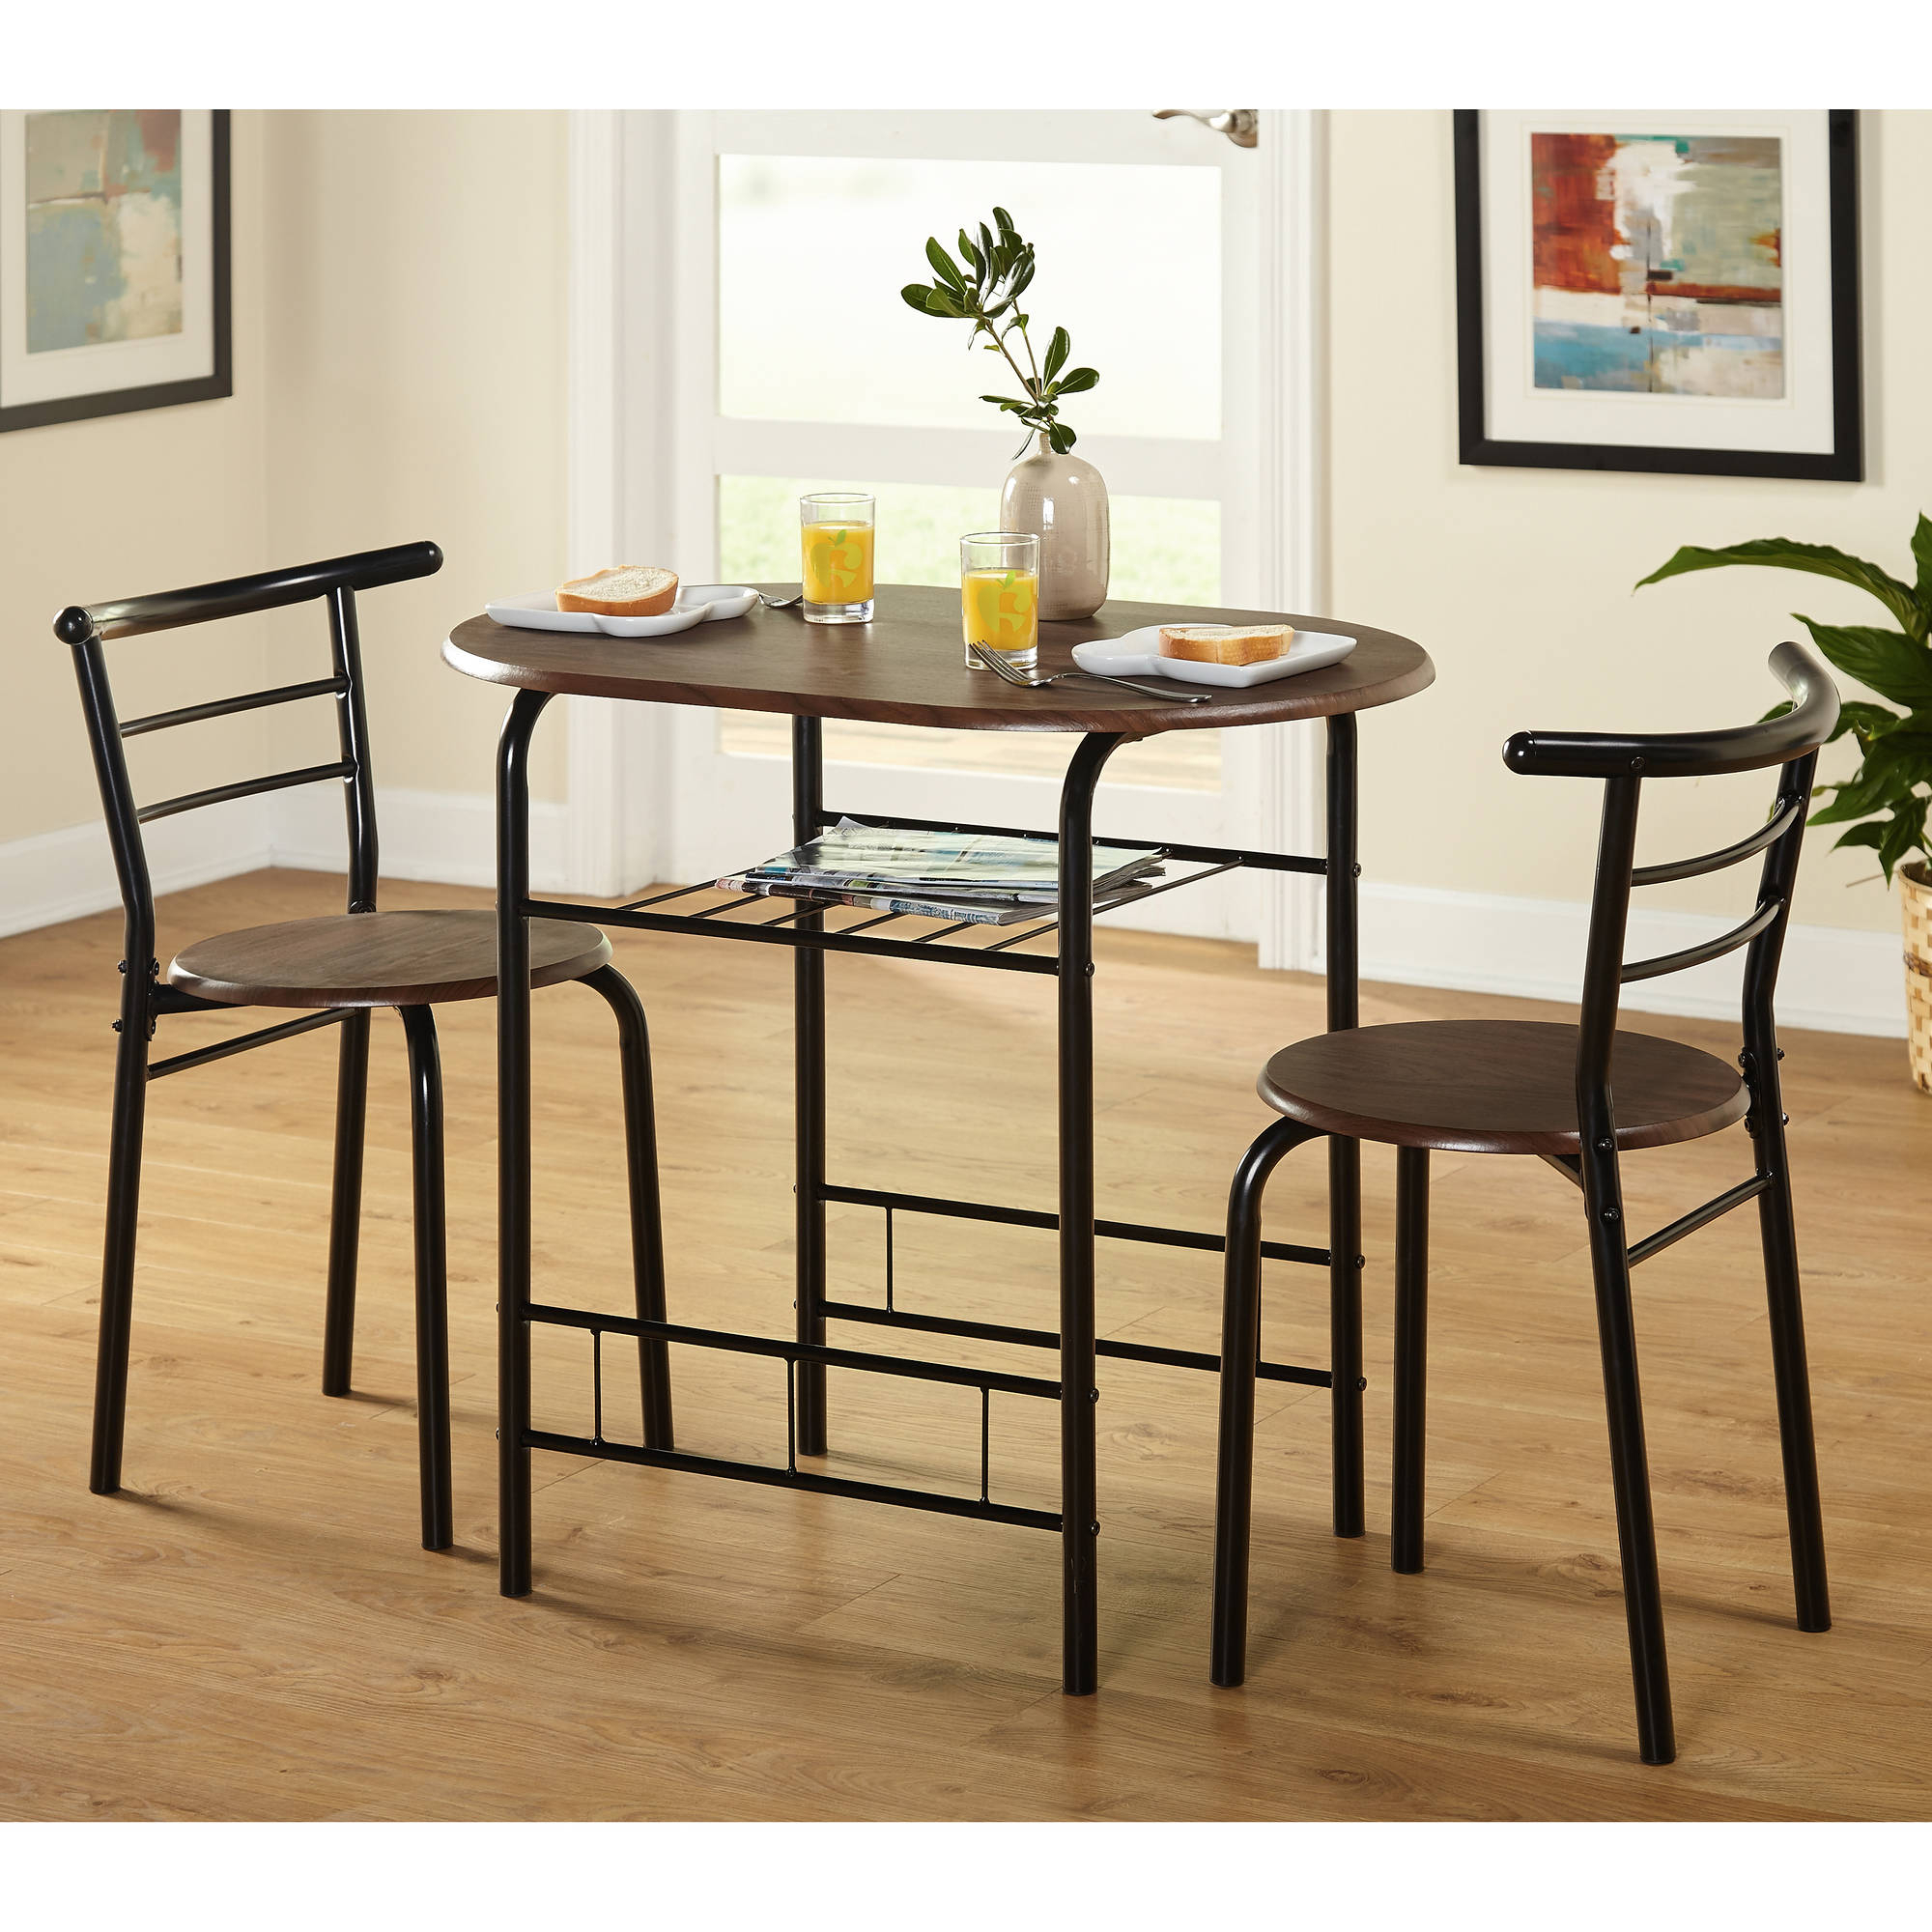 Details About Tms 3 Piece Bistro Dining Set Inside Most Current 3 Pieces Dining Tables And Chair Set (View 16 of 30)